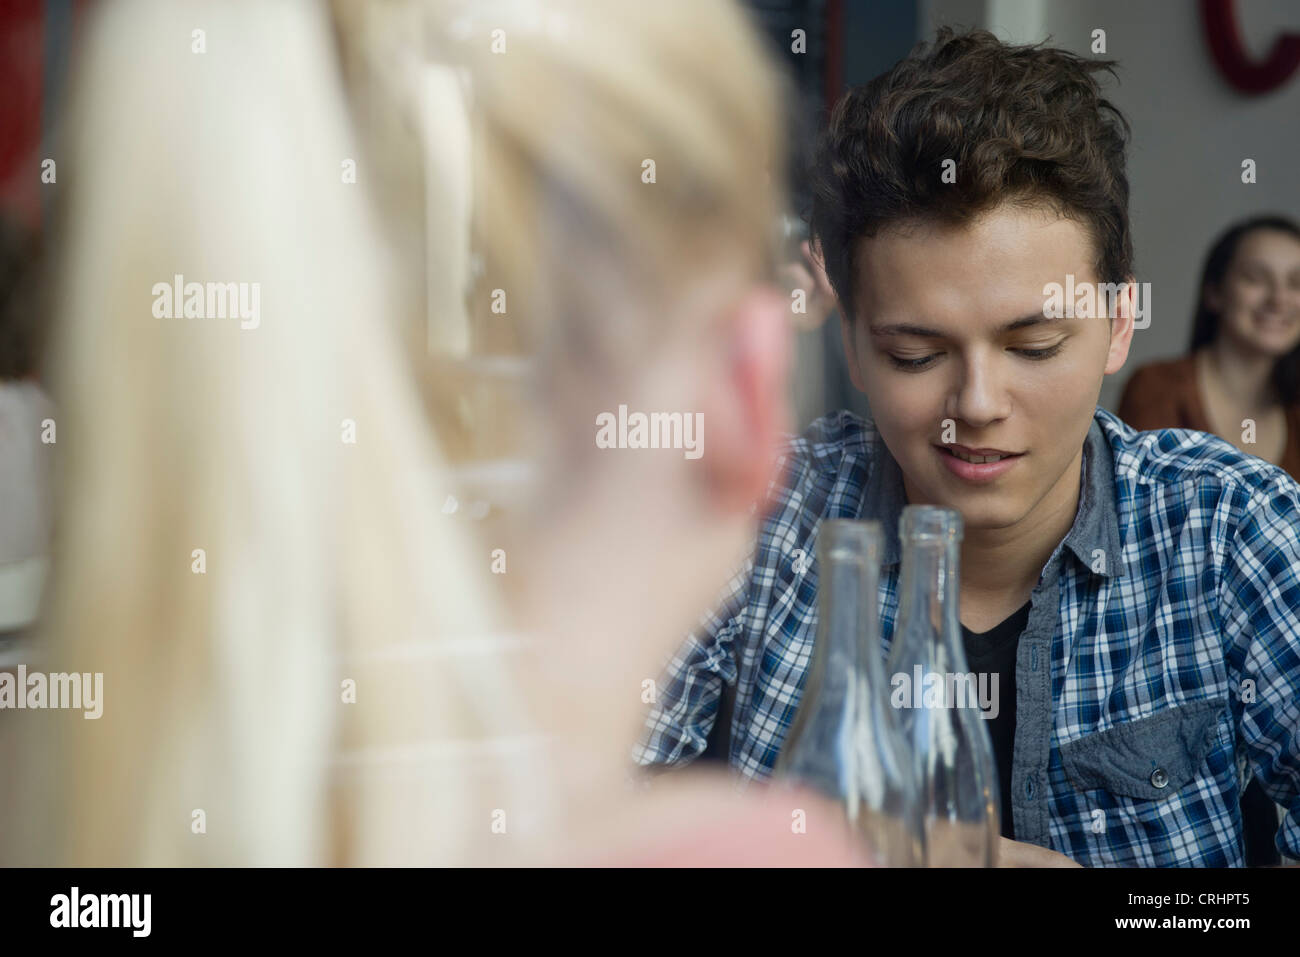 Young man in cafe with friend - Stock Image